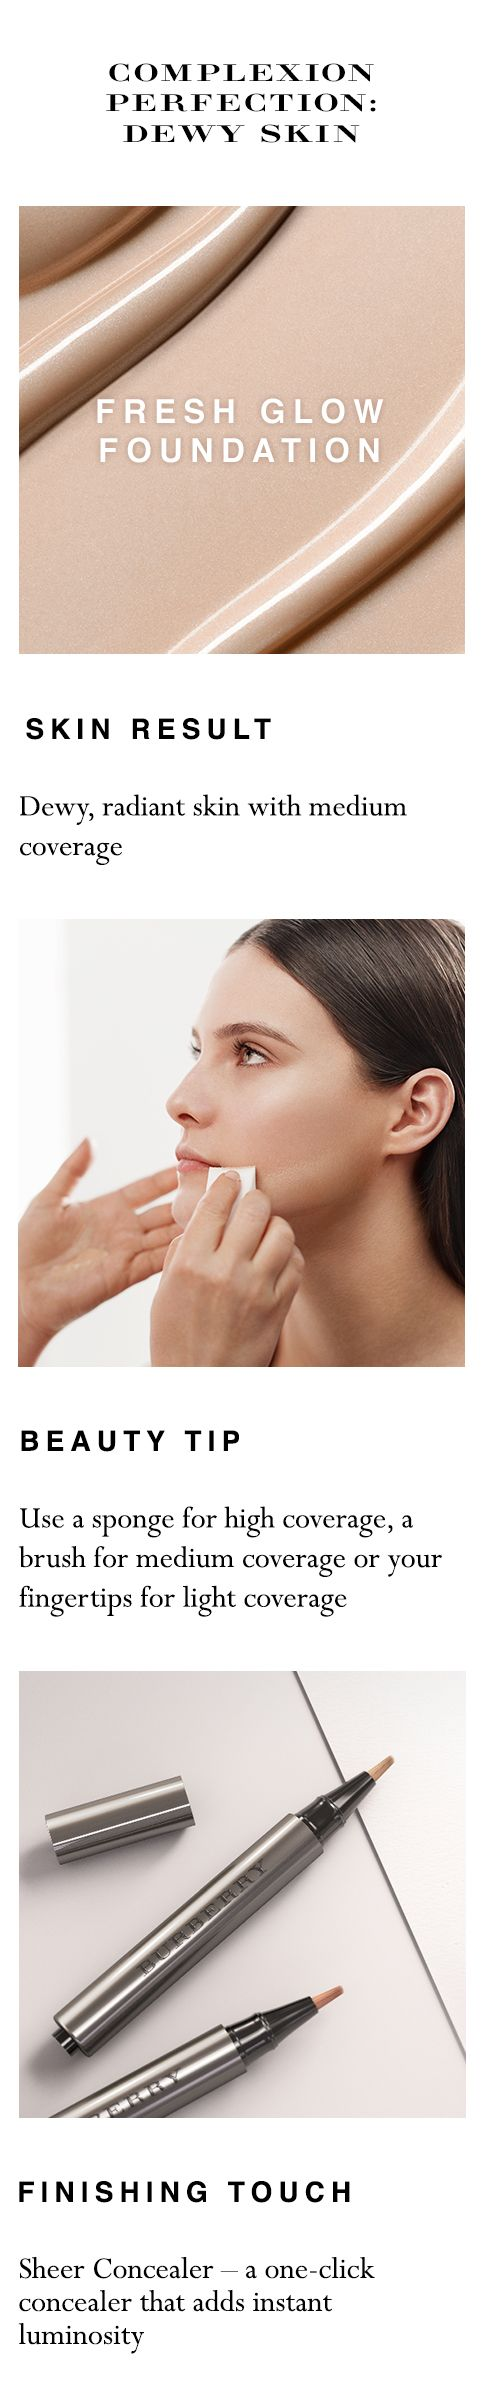 Shop your complete dewy skin look at sephora.com.